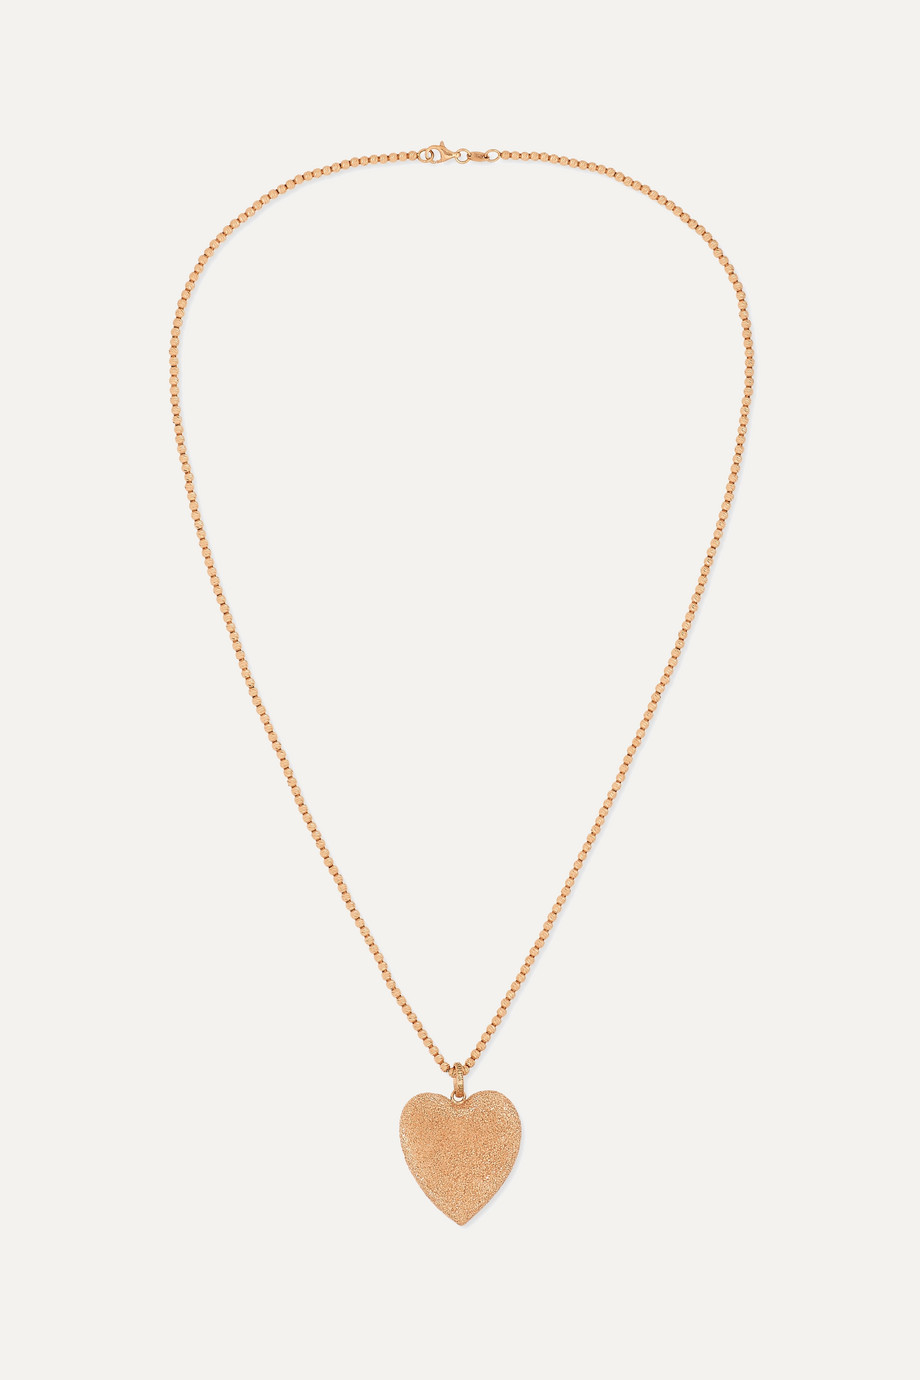 Carolina Bucci Florentine 18-karat rose gold necklace